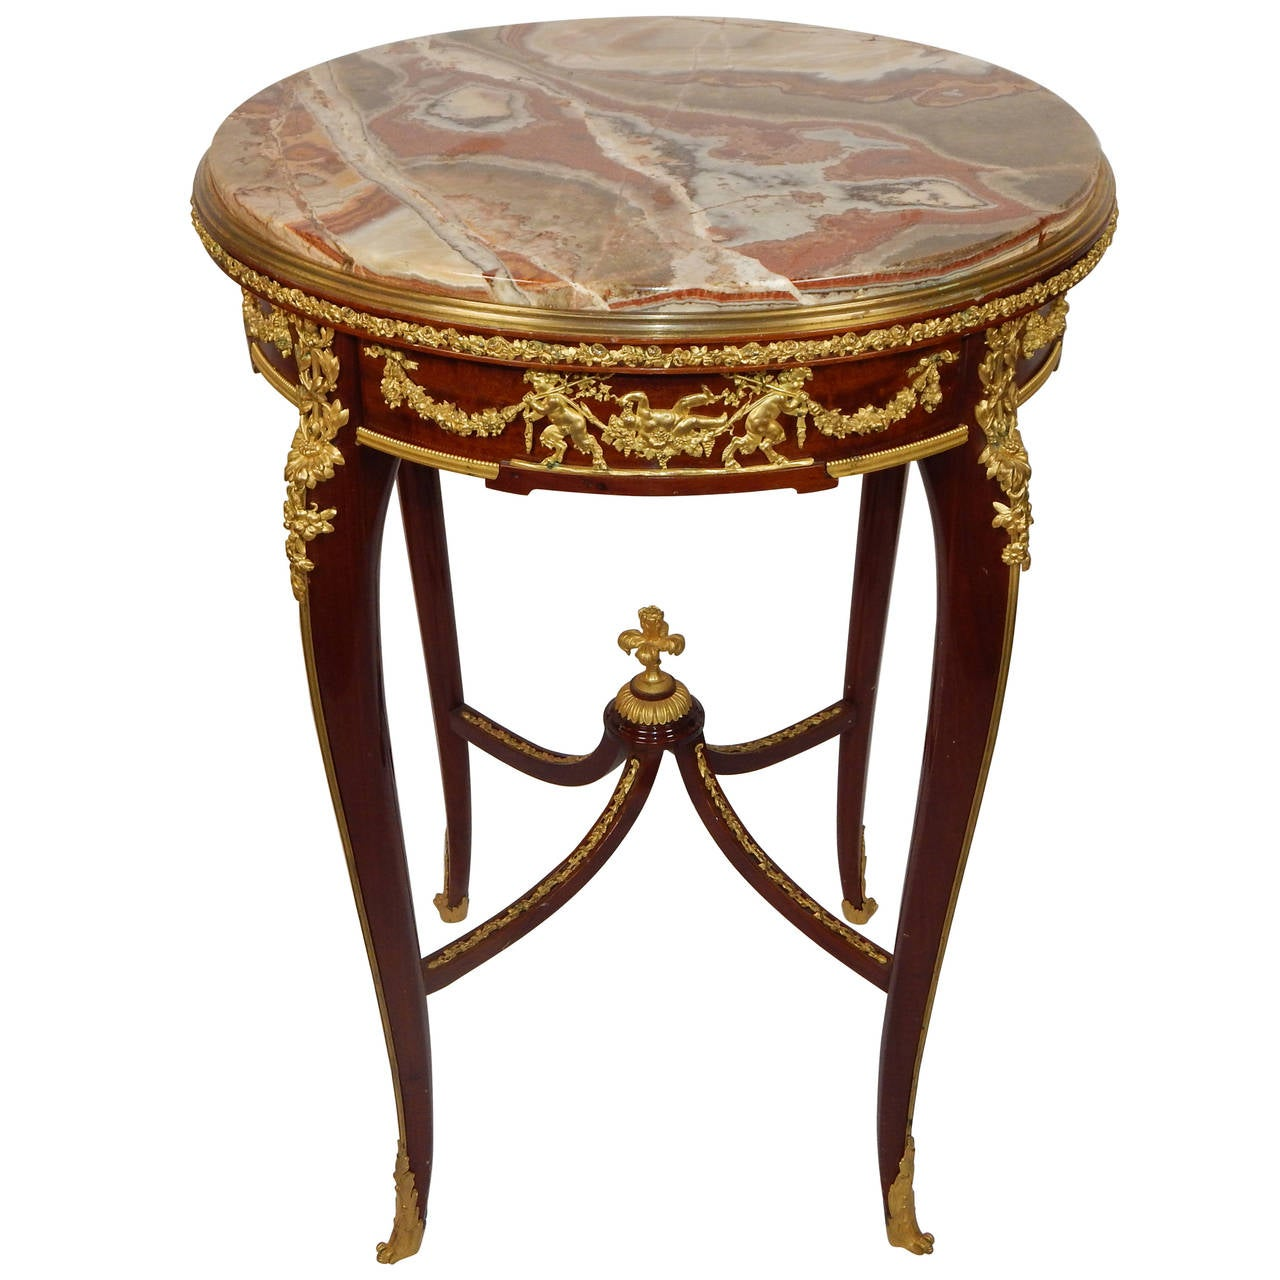 louis xv style bronze mounted marble top side table by fran ois linke at 1stdibs. Black Bedroom Furniture Sets. Home Design Ideas